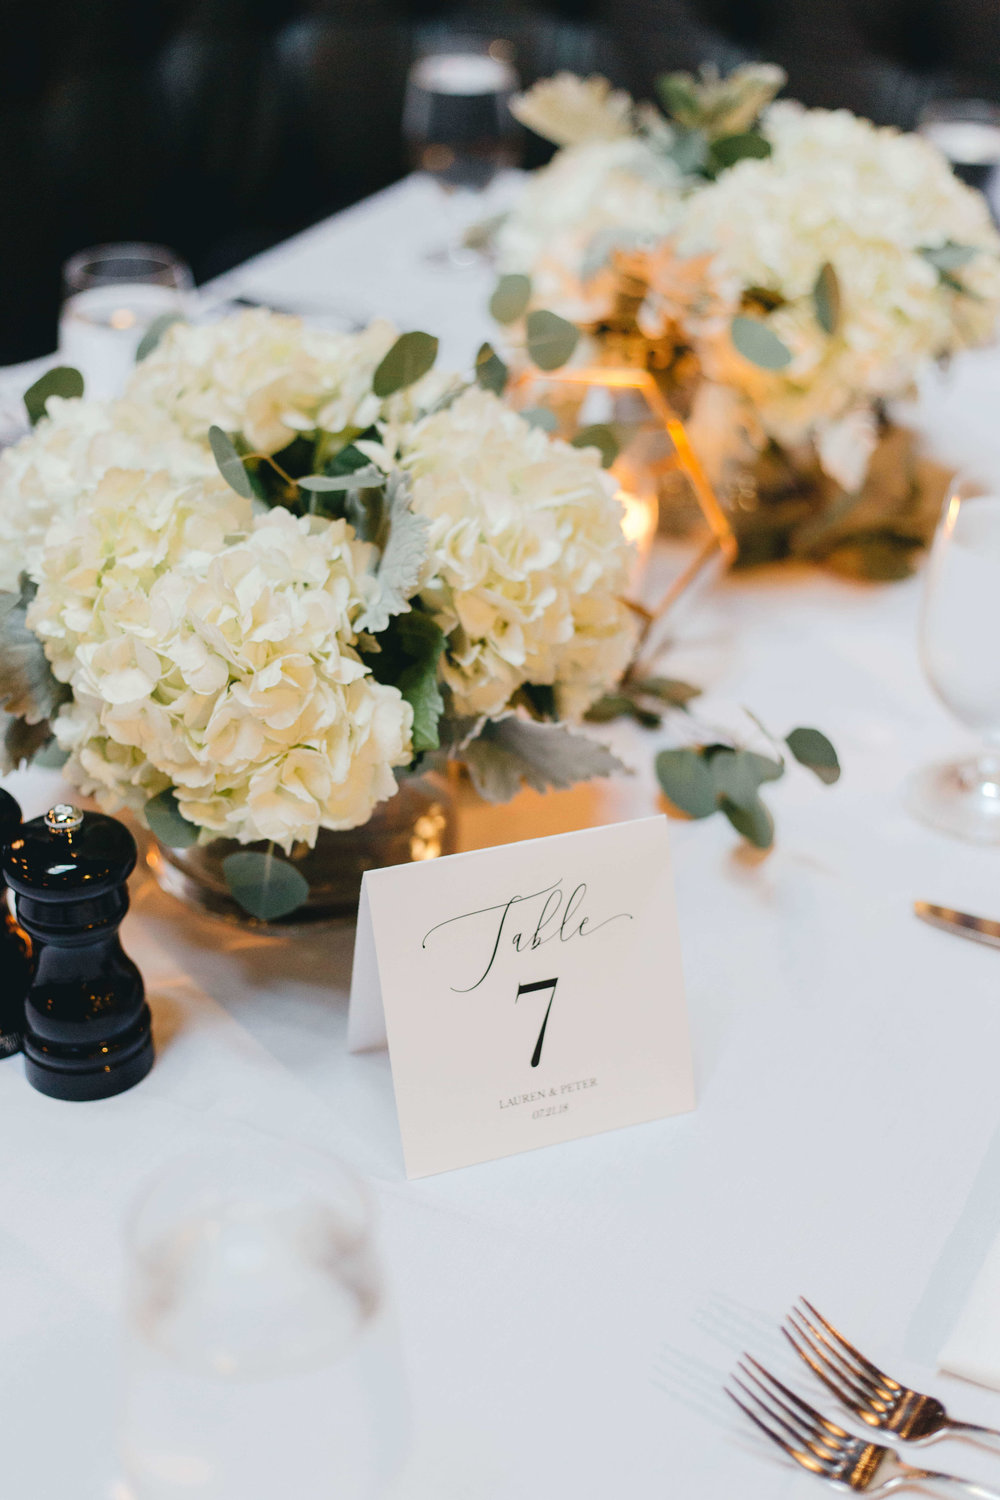 Roy Son Photography | Raspberry Island and Octo Fish bar | Minneapolis wedding planner Sixpence Events | Bachman's simple table centerpieces with white hydrangeas and table numbers